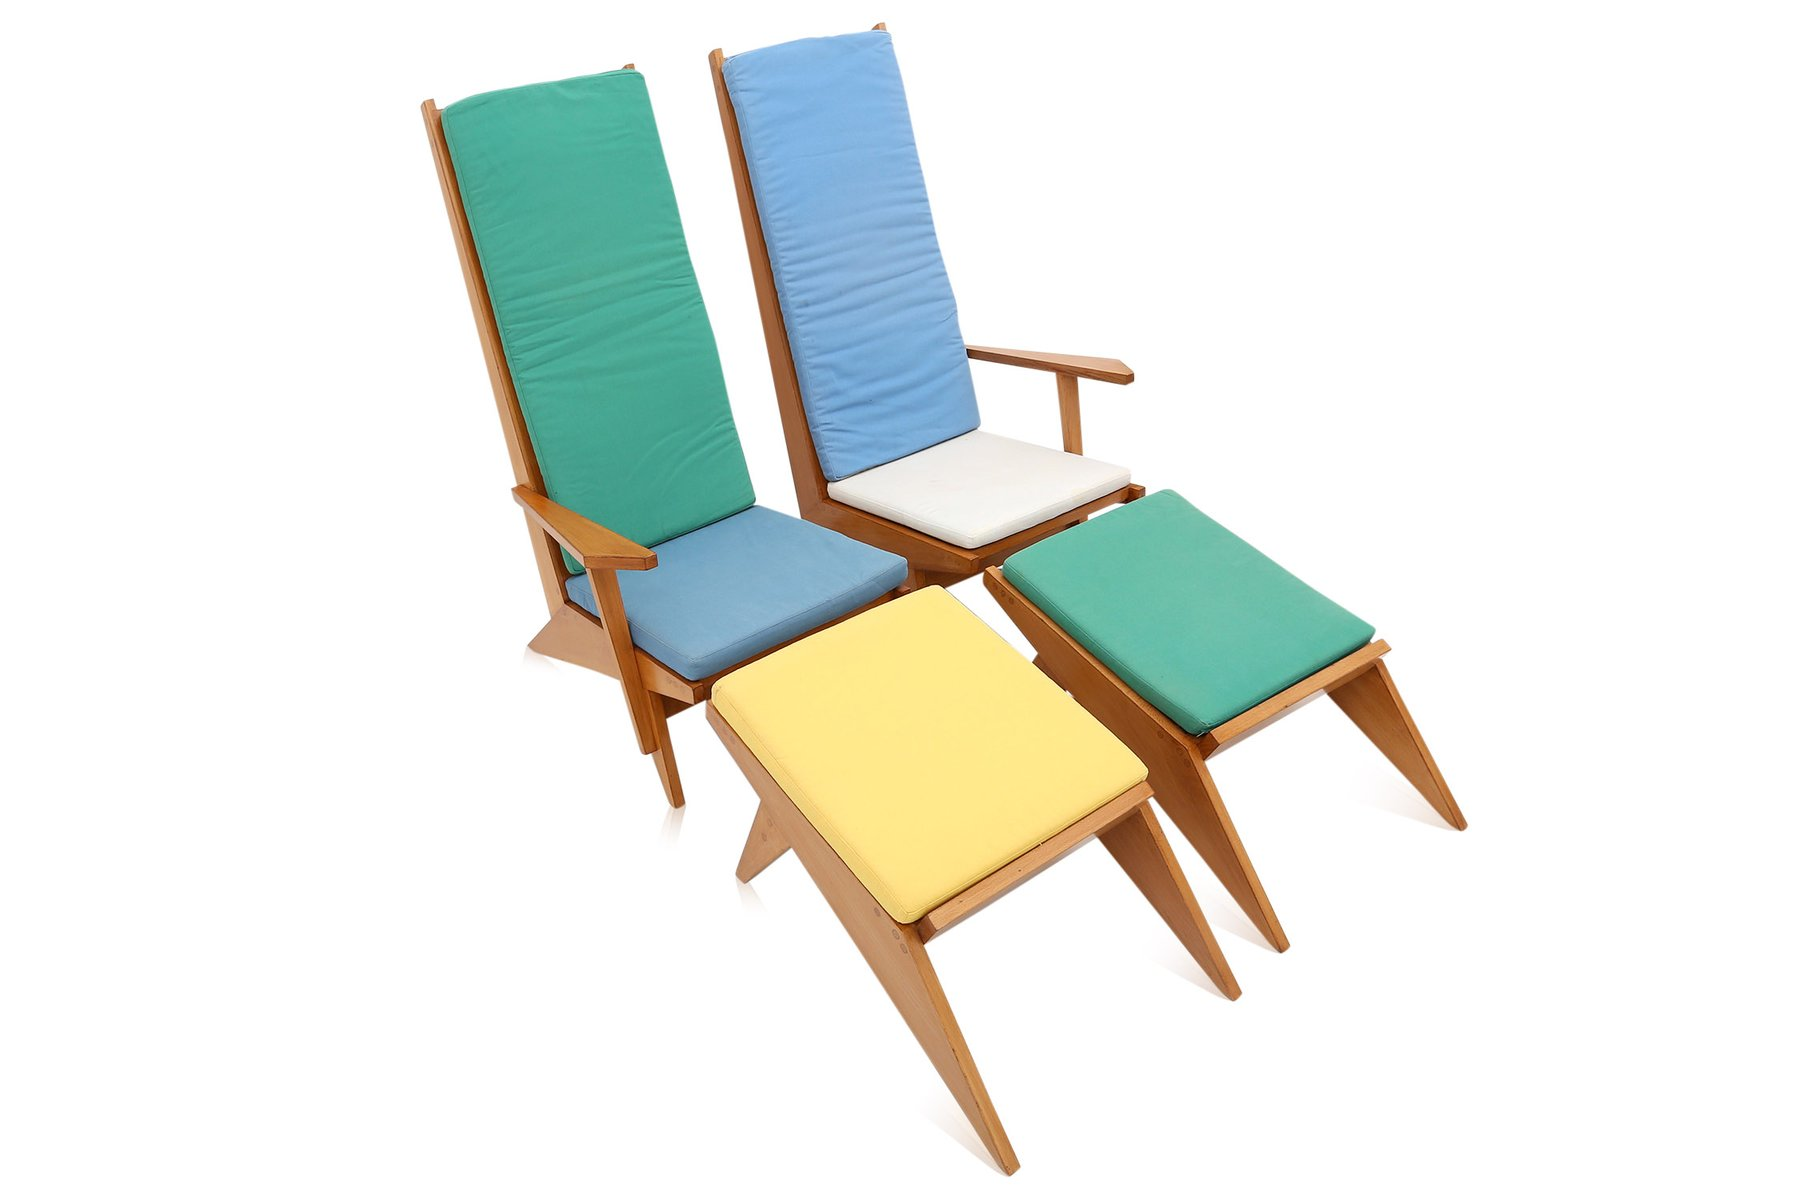 Vintage Italian Swimming Pool Lounge Chairs 1970s for sale at Pamono